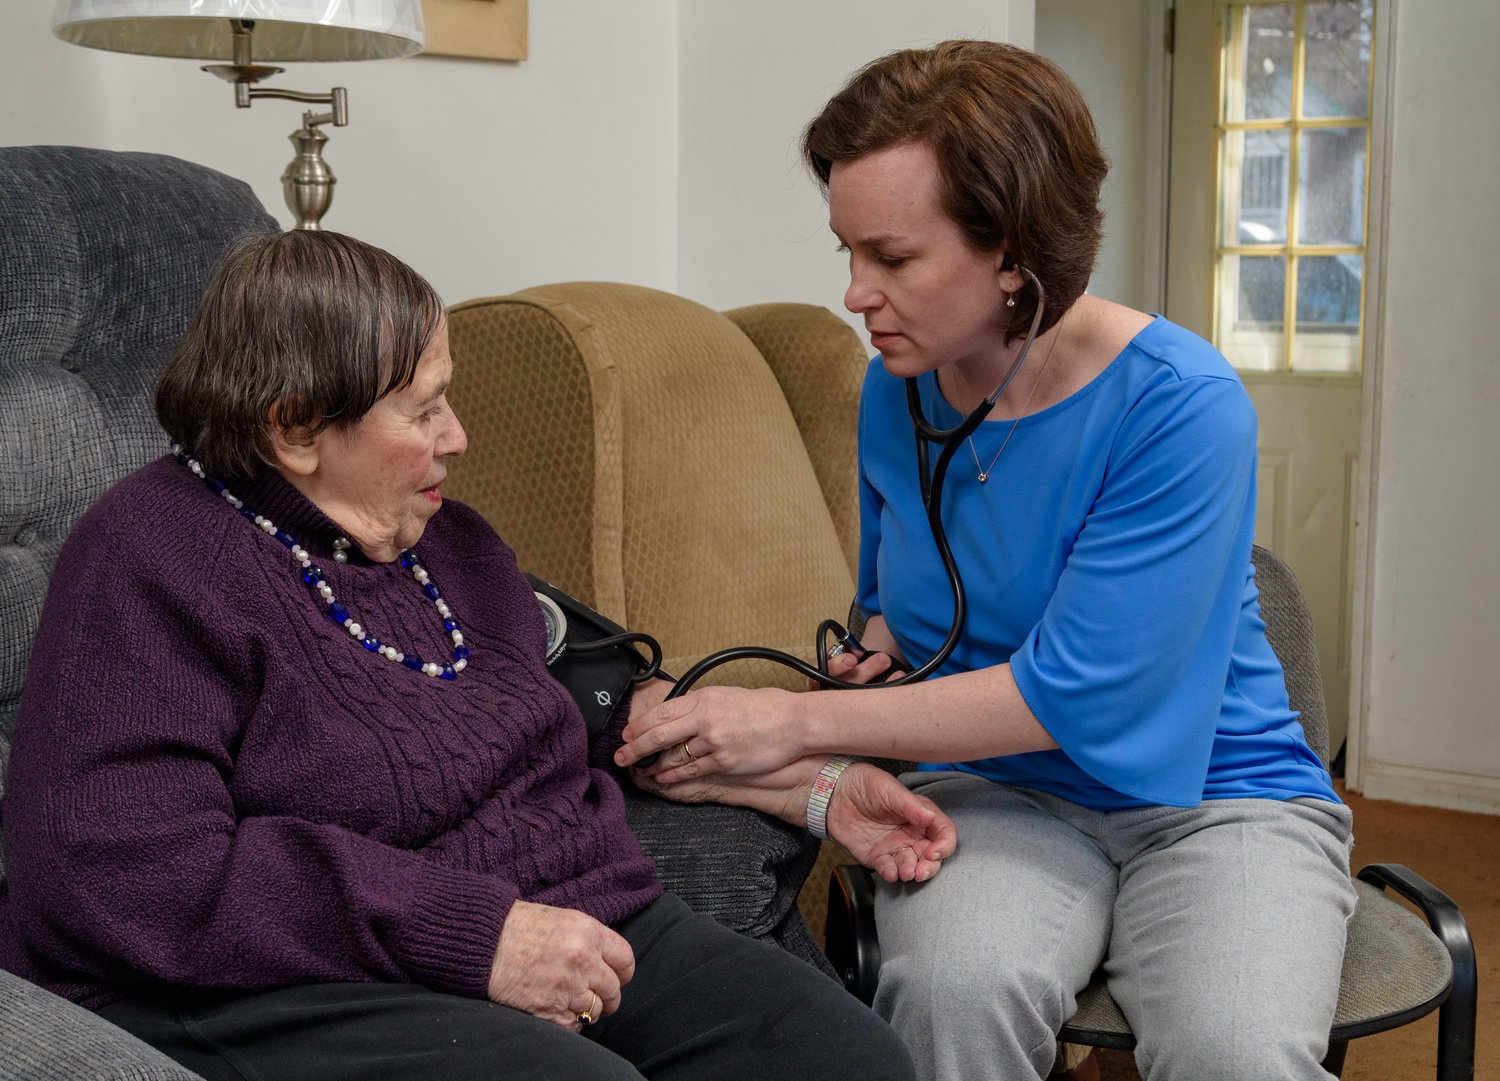 House Calls provides in-home health care to the elderly who find it difficult to leave their homes. On a recent visit, Dr. Karen Abrashkin checked Rose Katz's blood pressure.